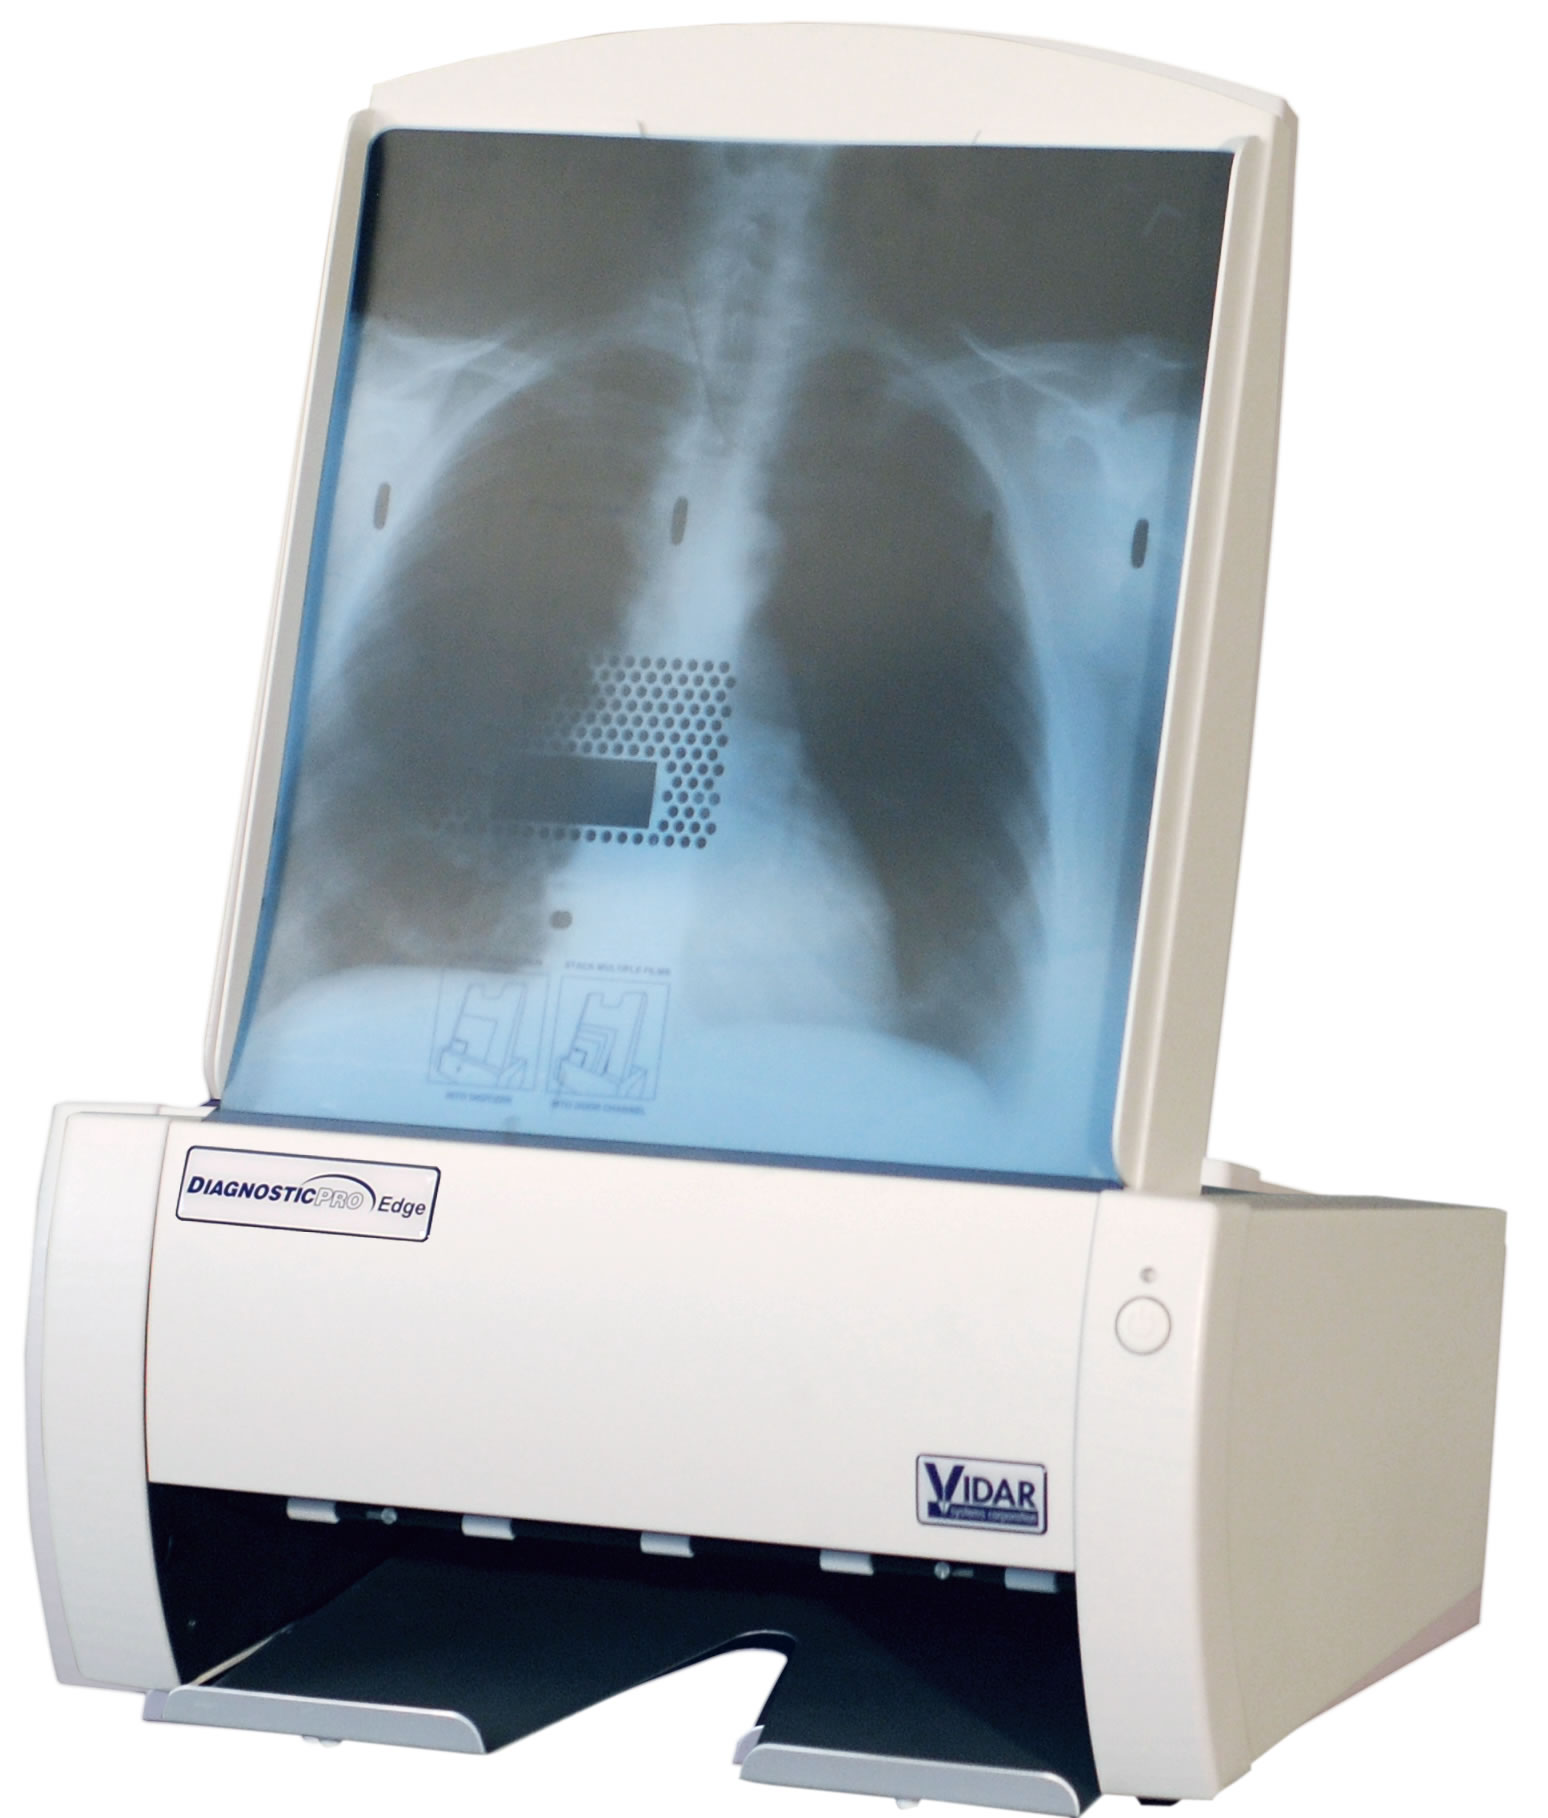 vidar diagnosticpro edge xray